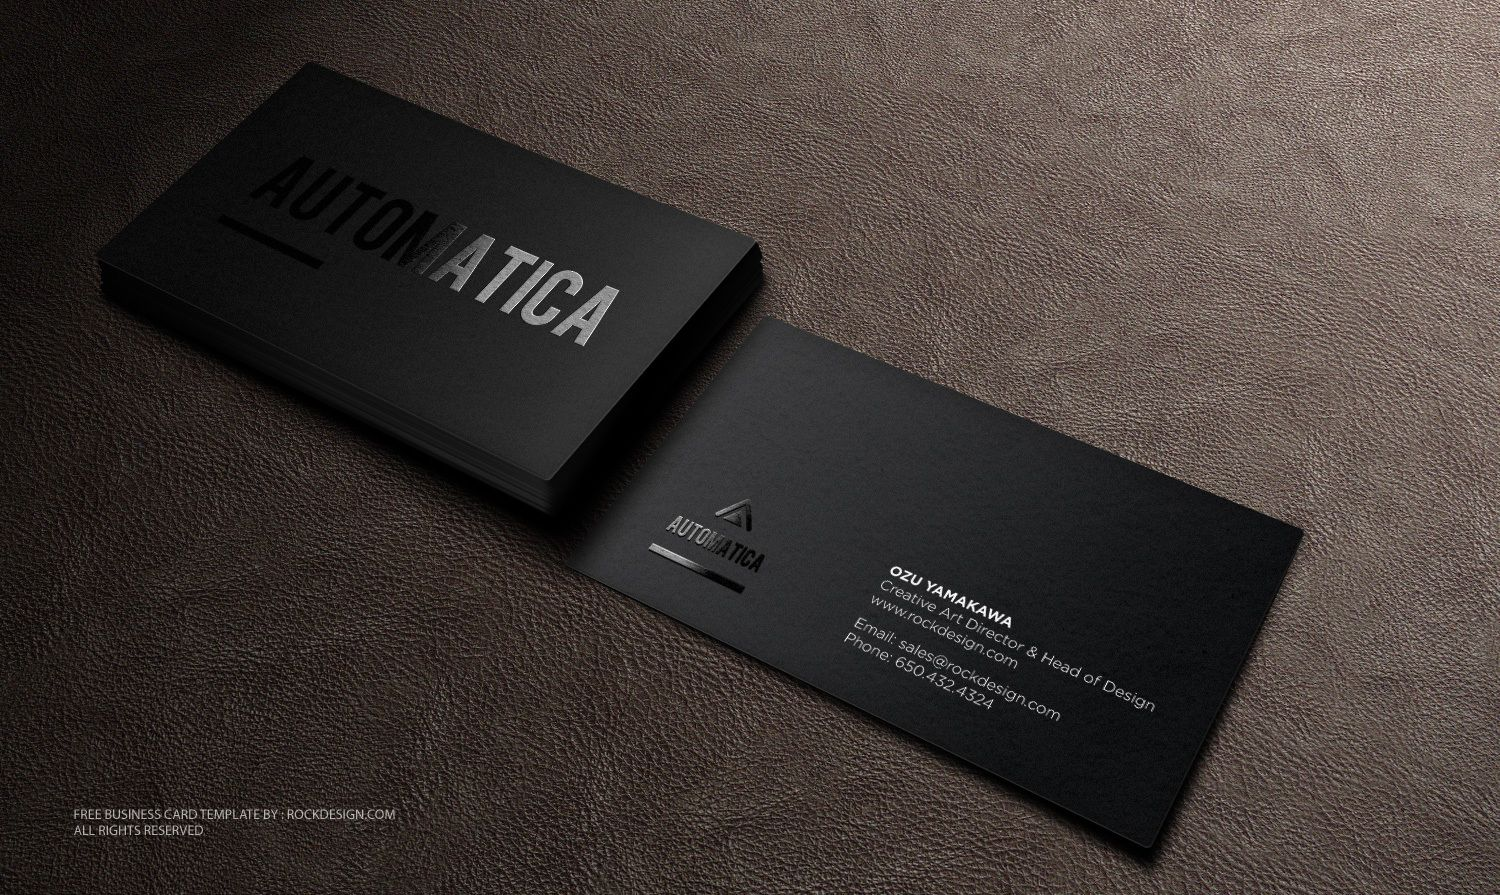 Black business card template download free design templates free business card templates for rockdesign print customers order a professional business card template online choose from our wide selection of business wajeb Choice Image